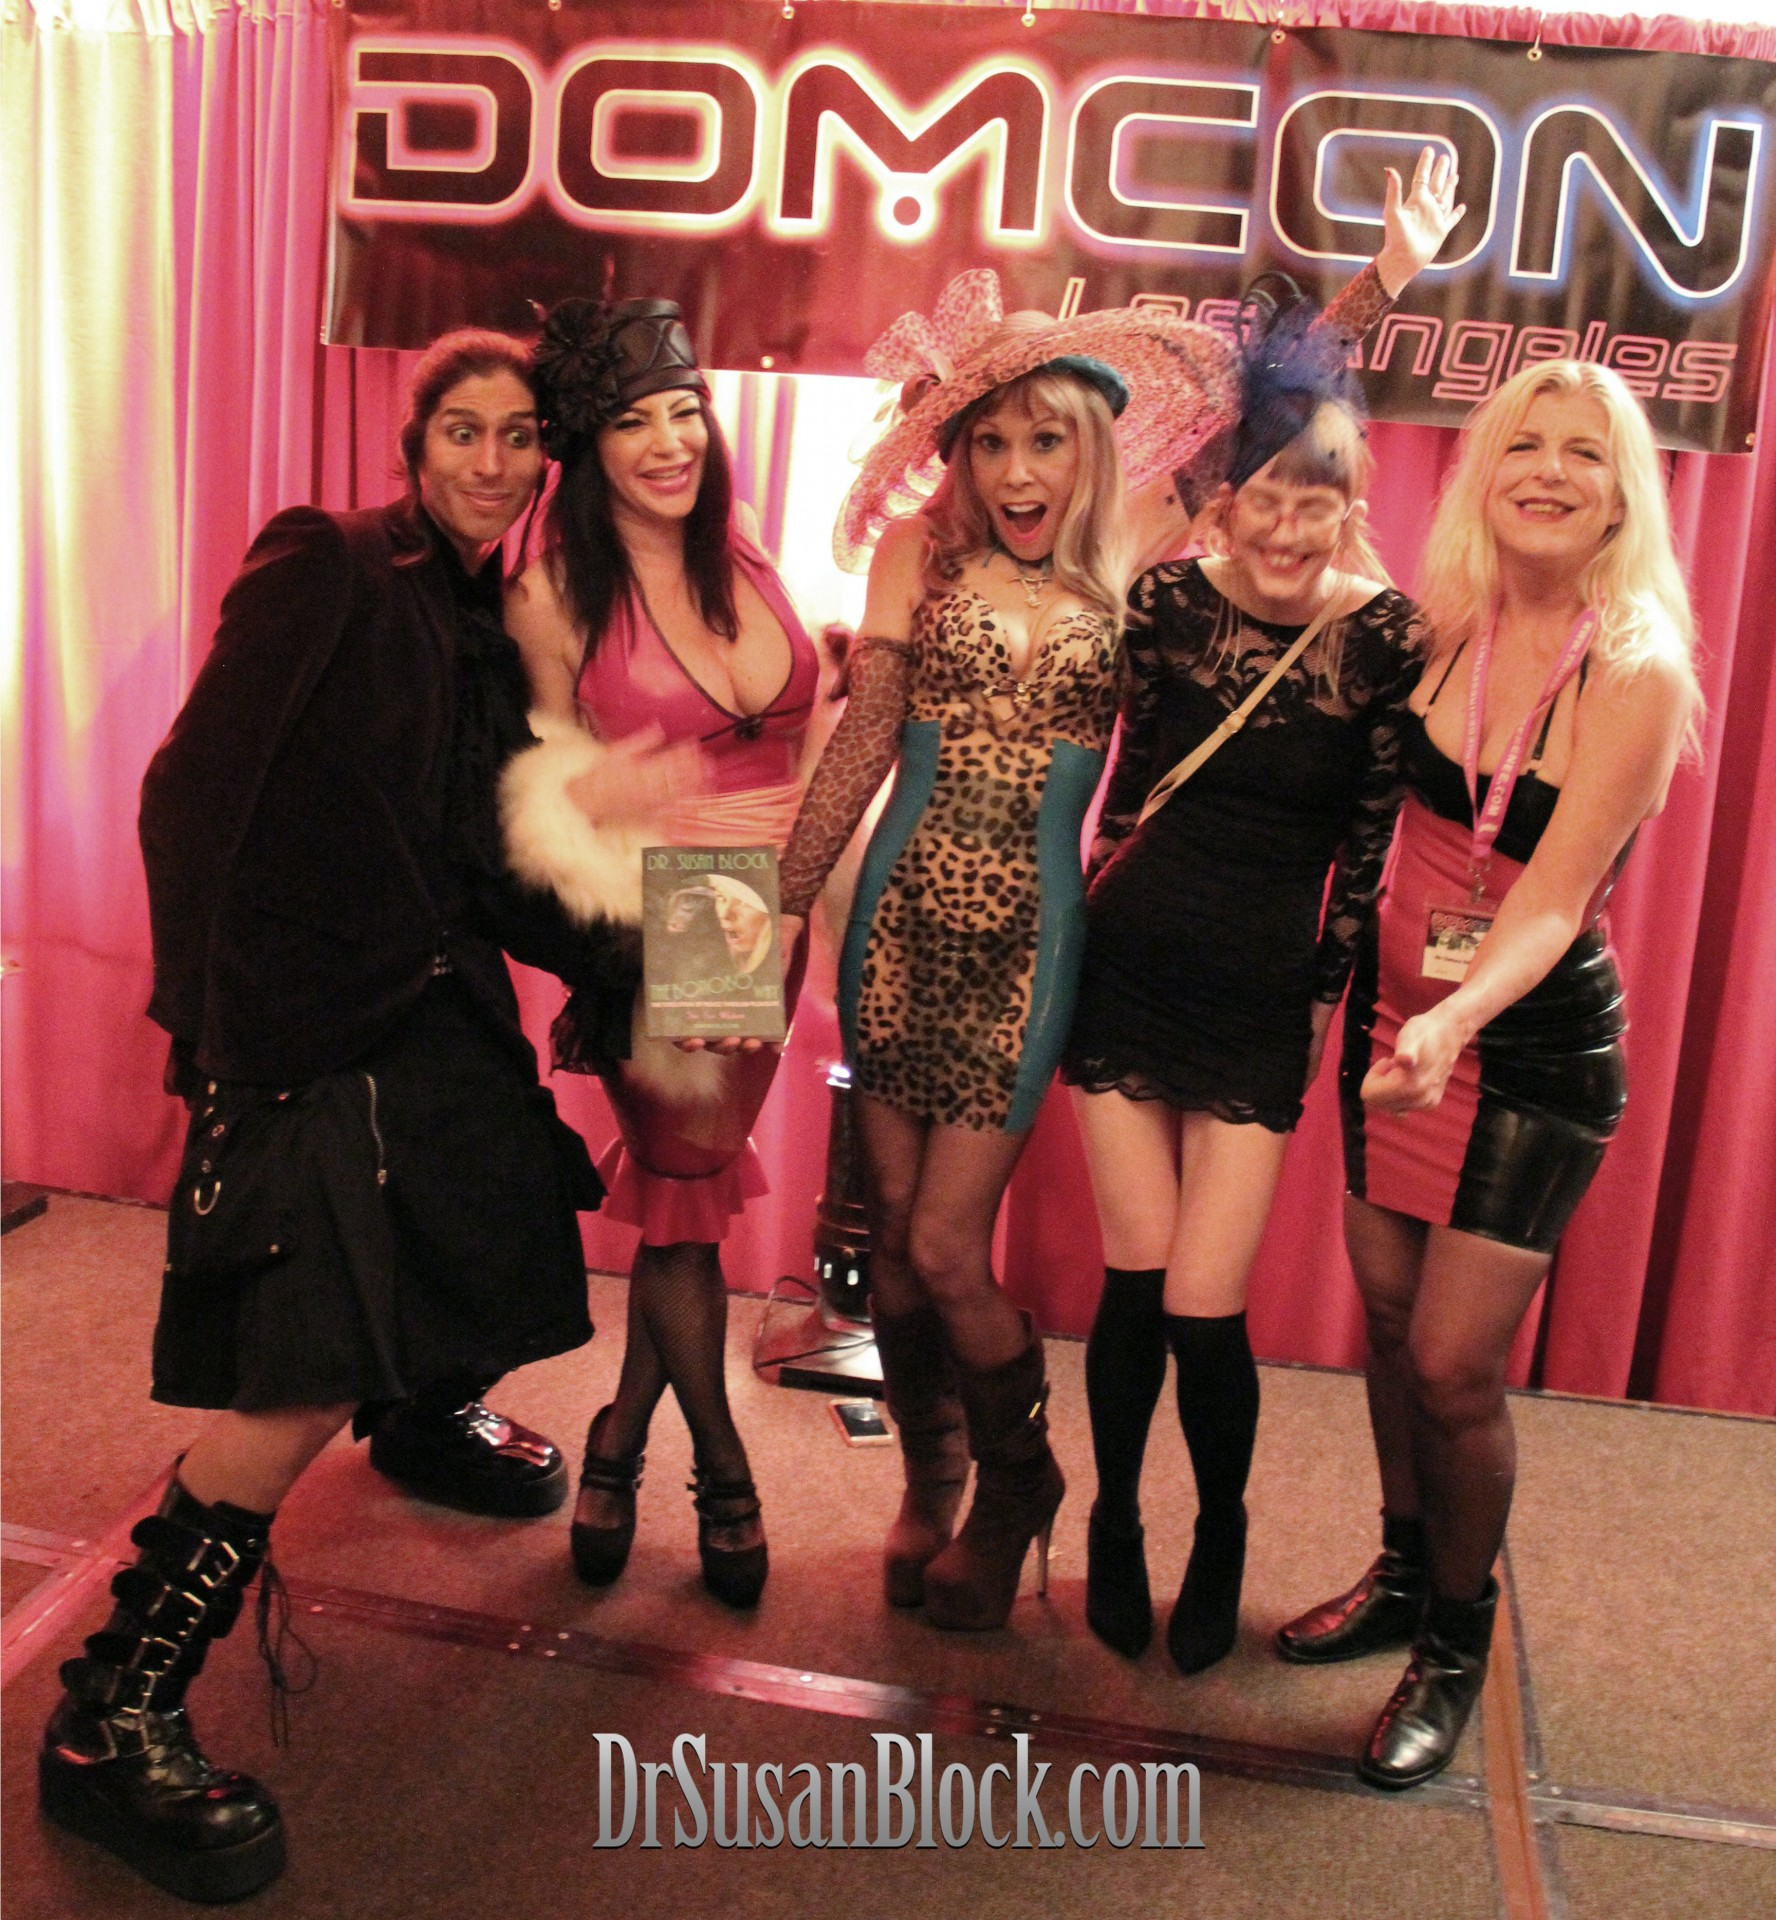 The Bonobo Way at DomCon LA. Photo: Unscene Abe